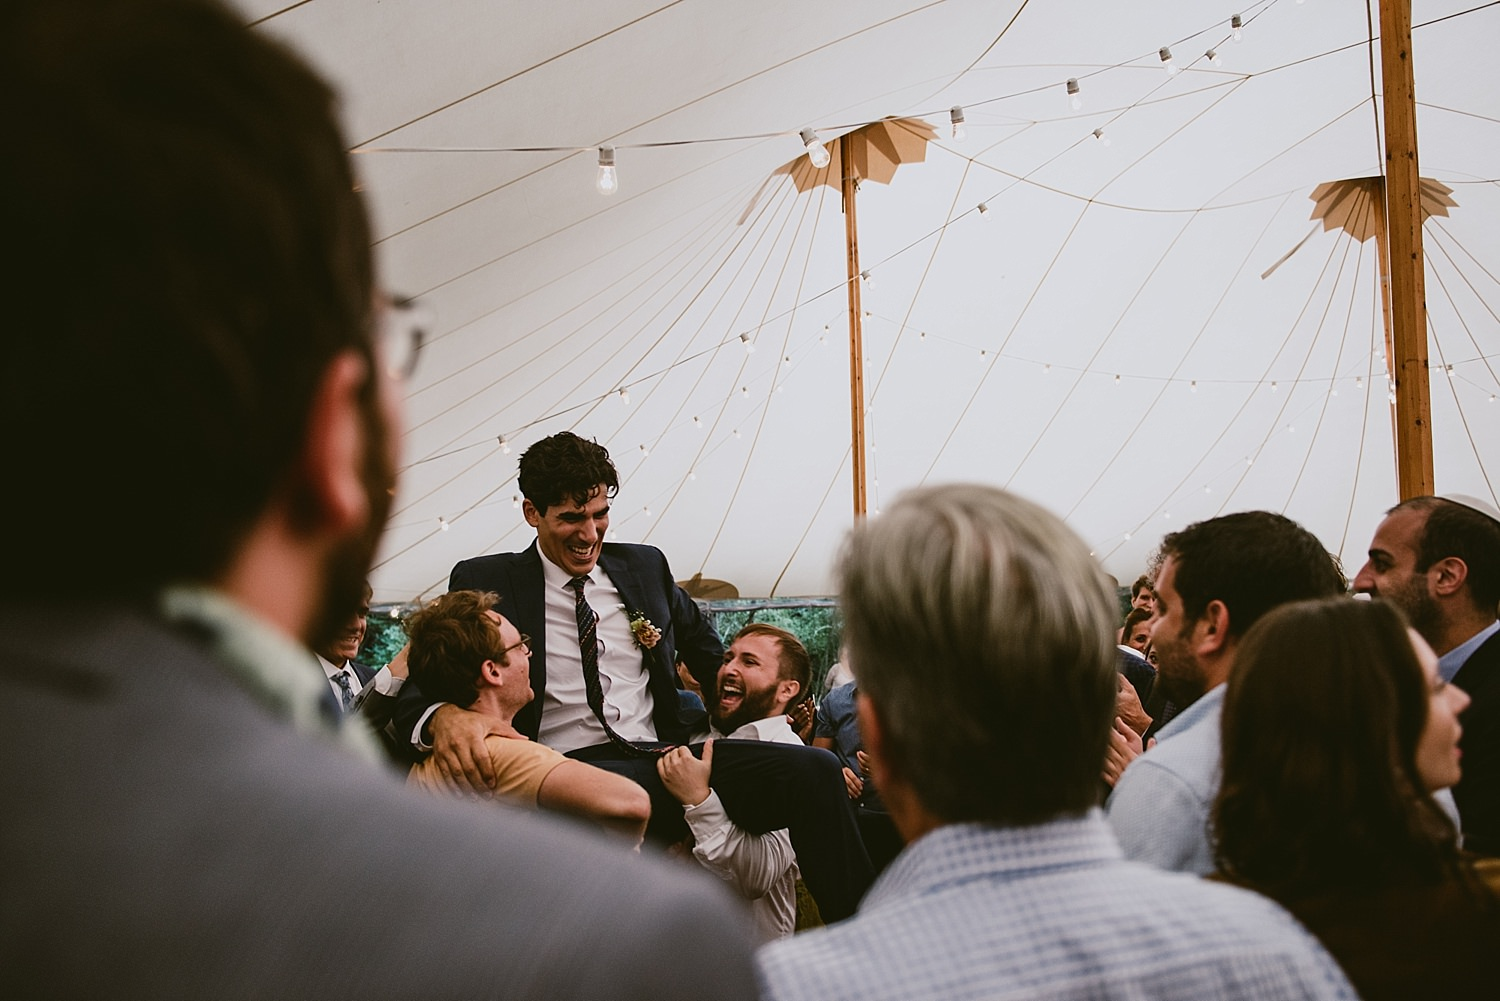 grooms men hoisting groom on shoulders